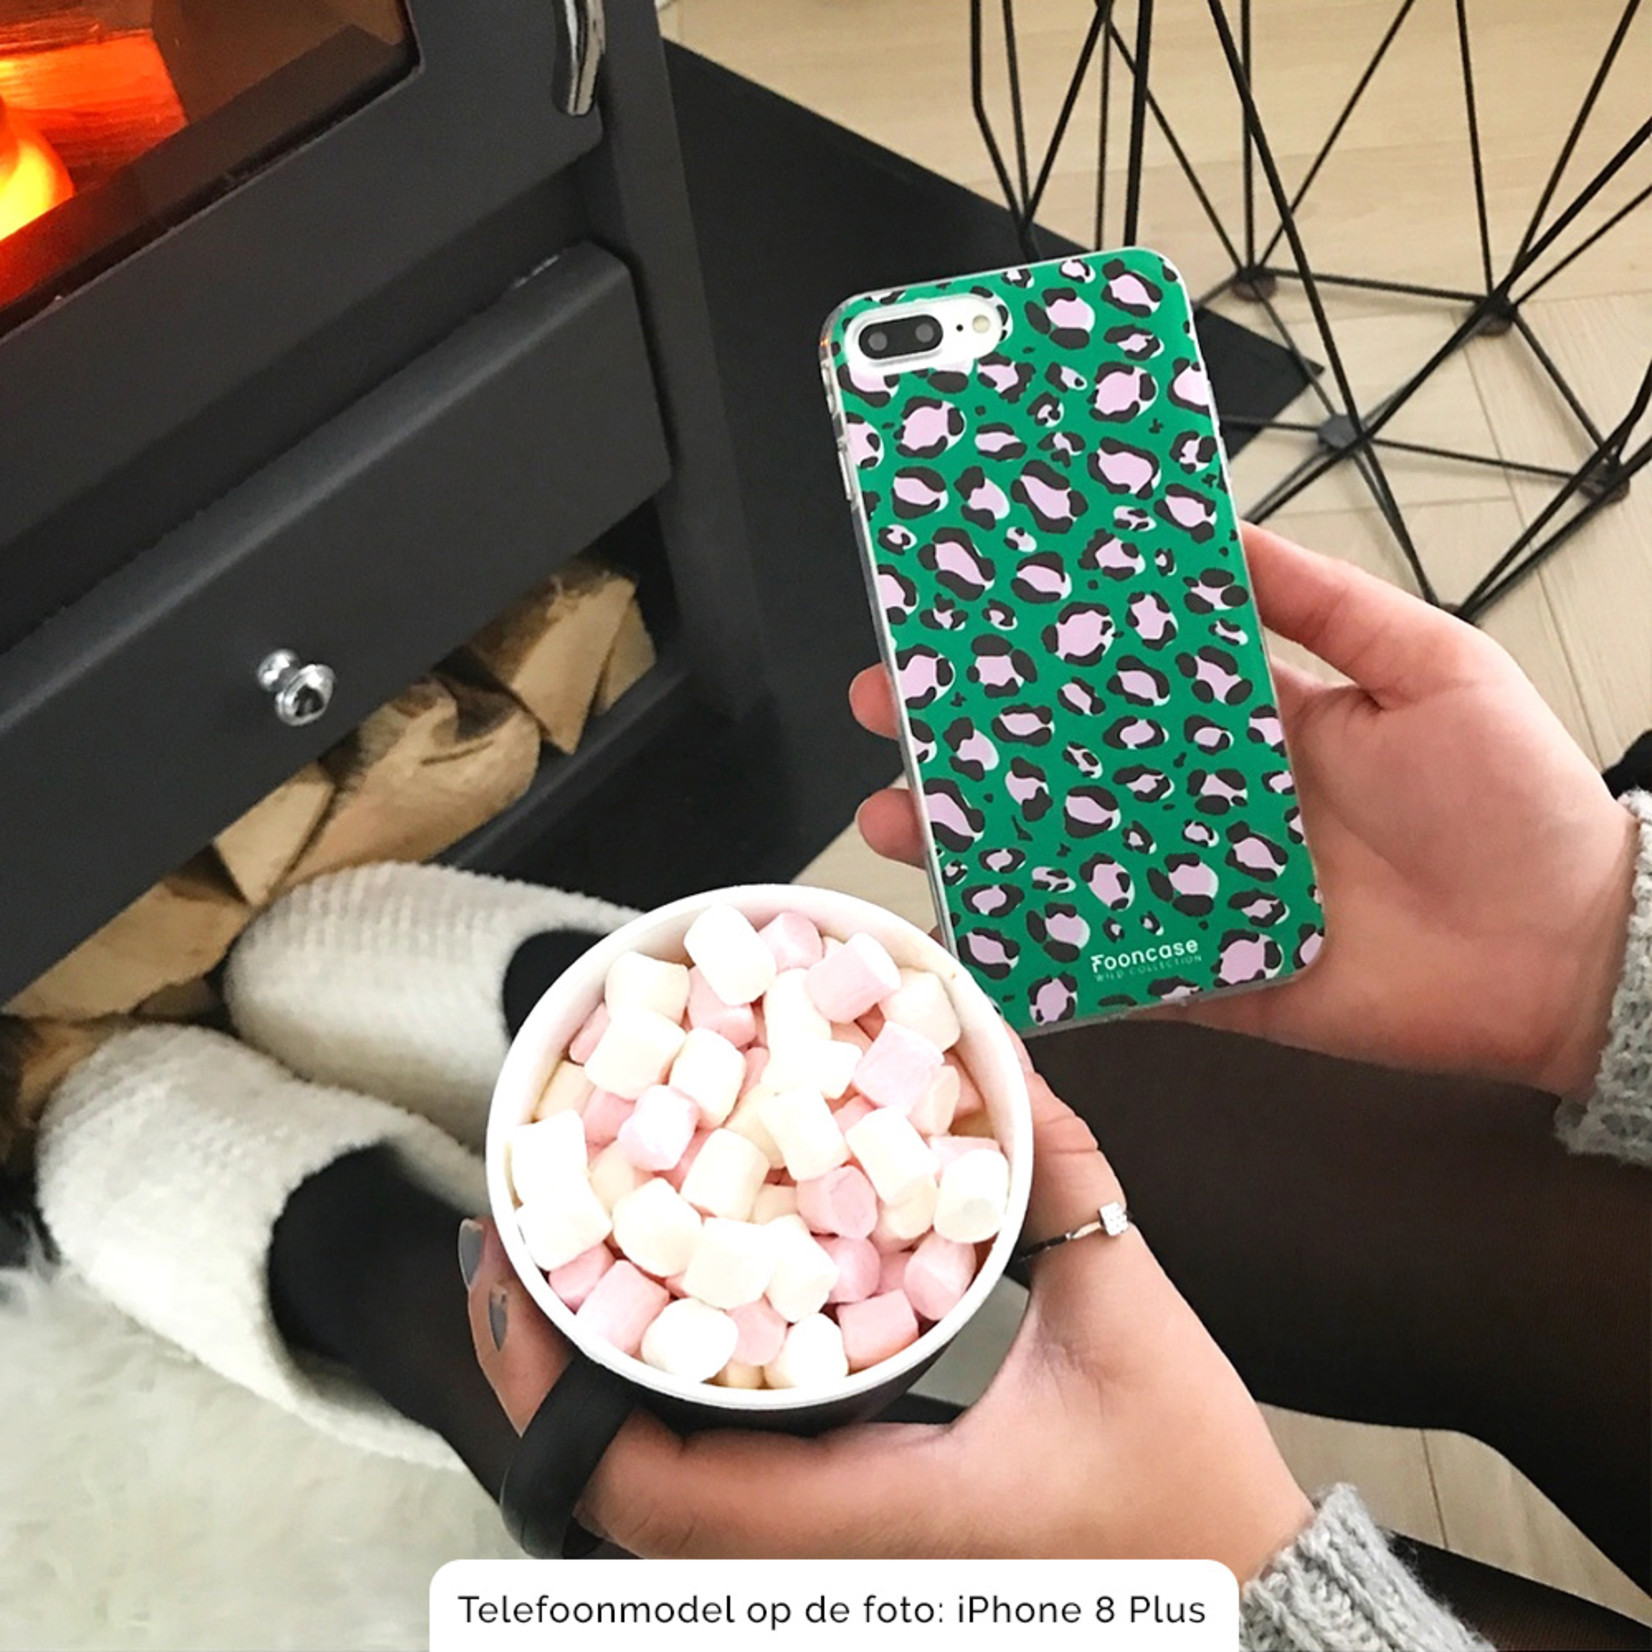 FOONCASE Samsung Galaxy S8 hoesje TPU Soft Case - Back Cover - WILD COLLECTION / Luipaard / Leopard print / Groen